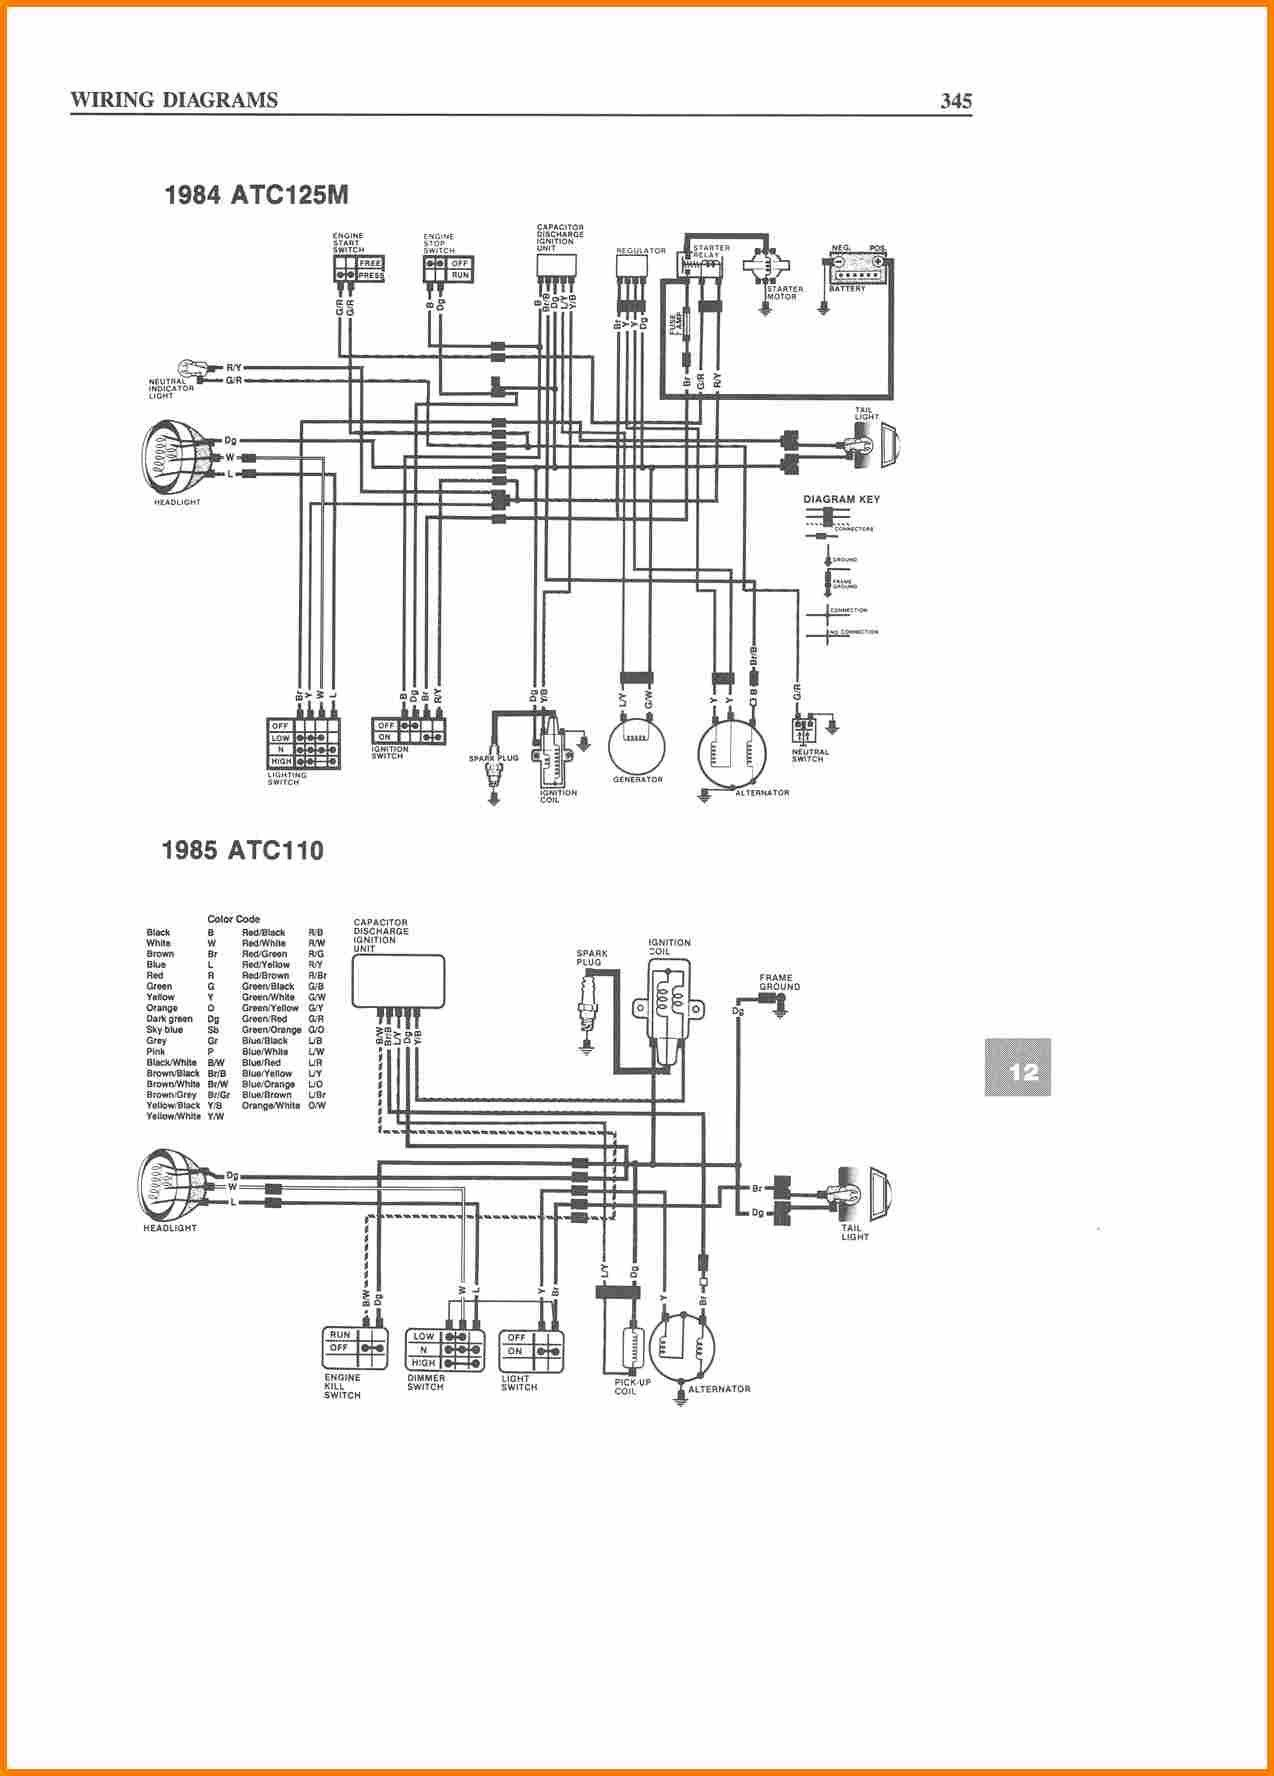 Taotao 50cc Scooter Wiring Diagram Beautiful Magnificent Tao 125 New Atv |  Motorcycle wiring, 90cc atv, Diagram | Wildfire Scooter Wiring Diagram |  | Pinterest